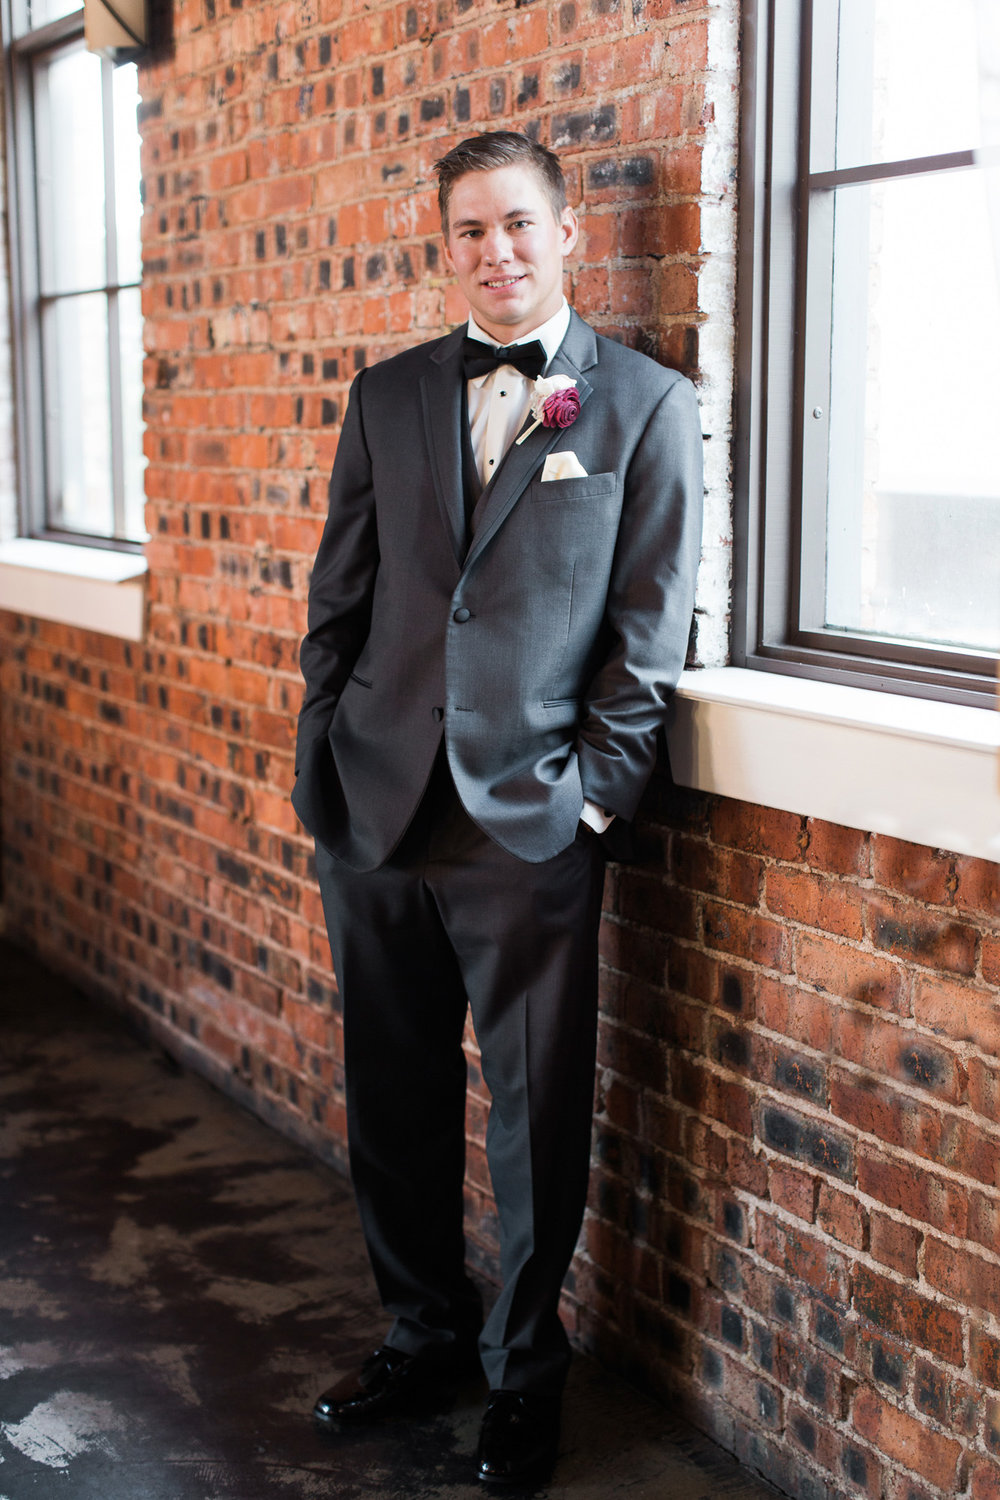 feb47-downtown-bryan-weddingdowntown-bryan-wedding.jpg